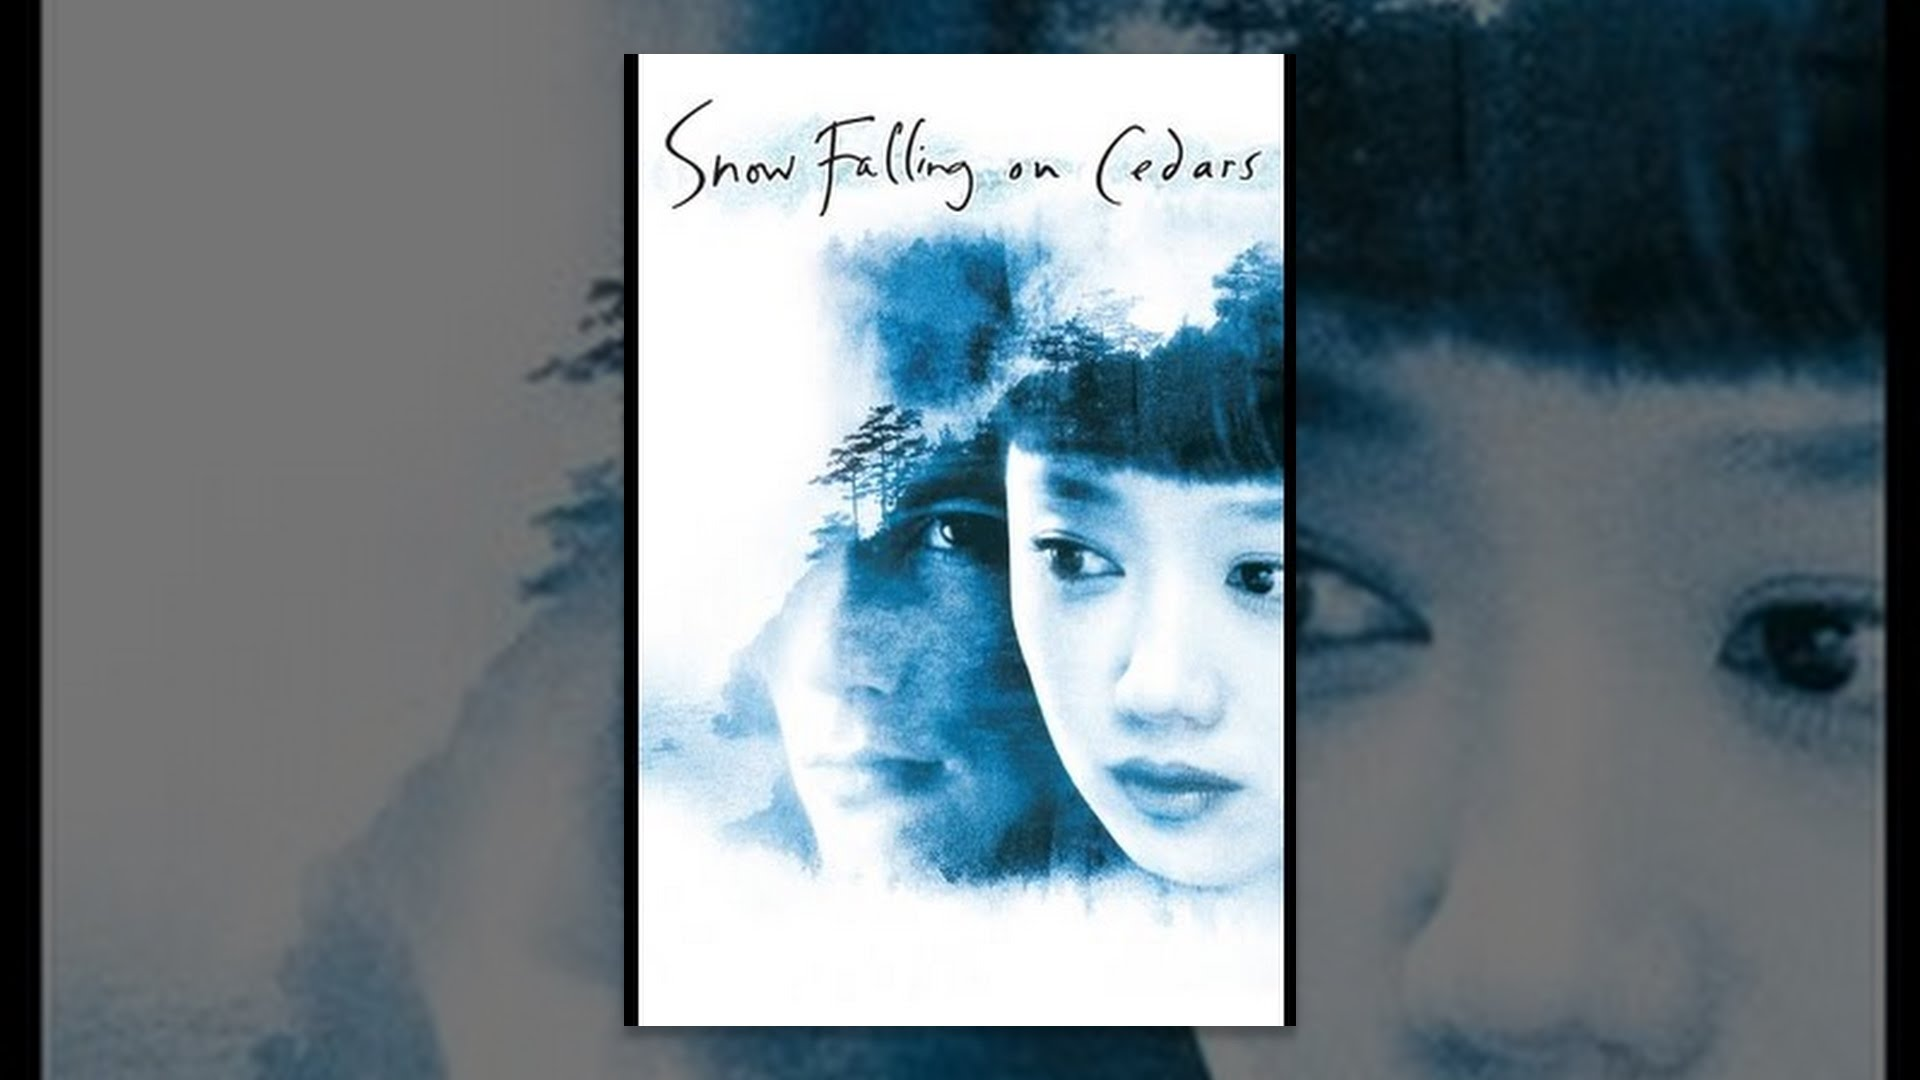 snow falling on cedars criticism response Reading group guide spotlight on: snow falling on cedars snow falling on cedars , 18-year-old hatsue imada gives what seems a naive response to her mother's de-.